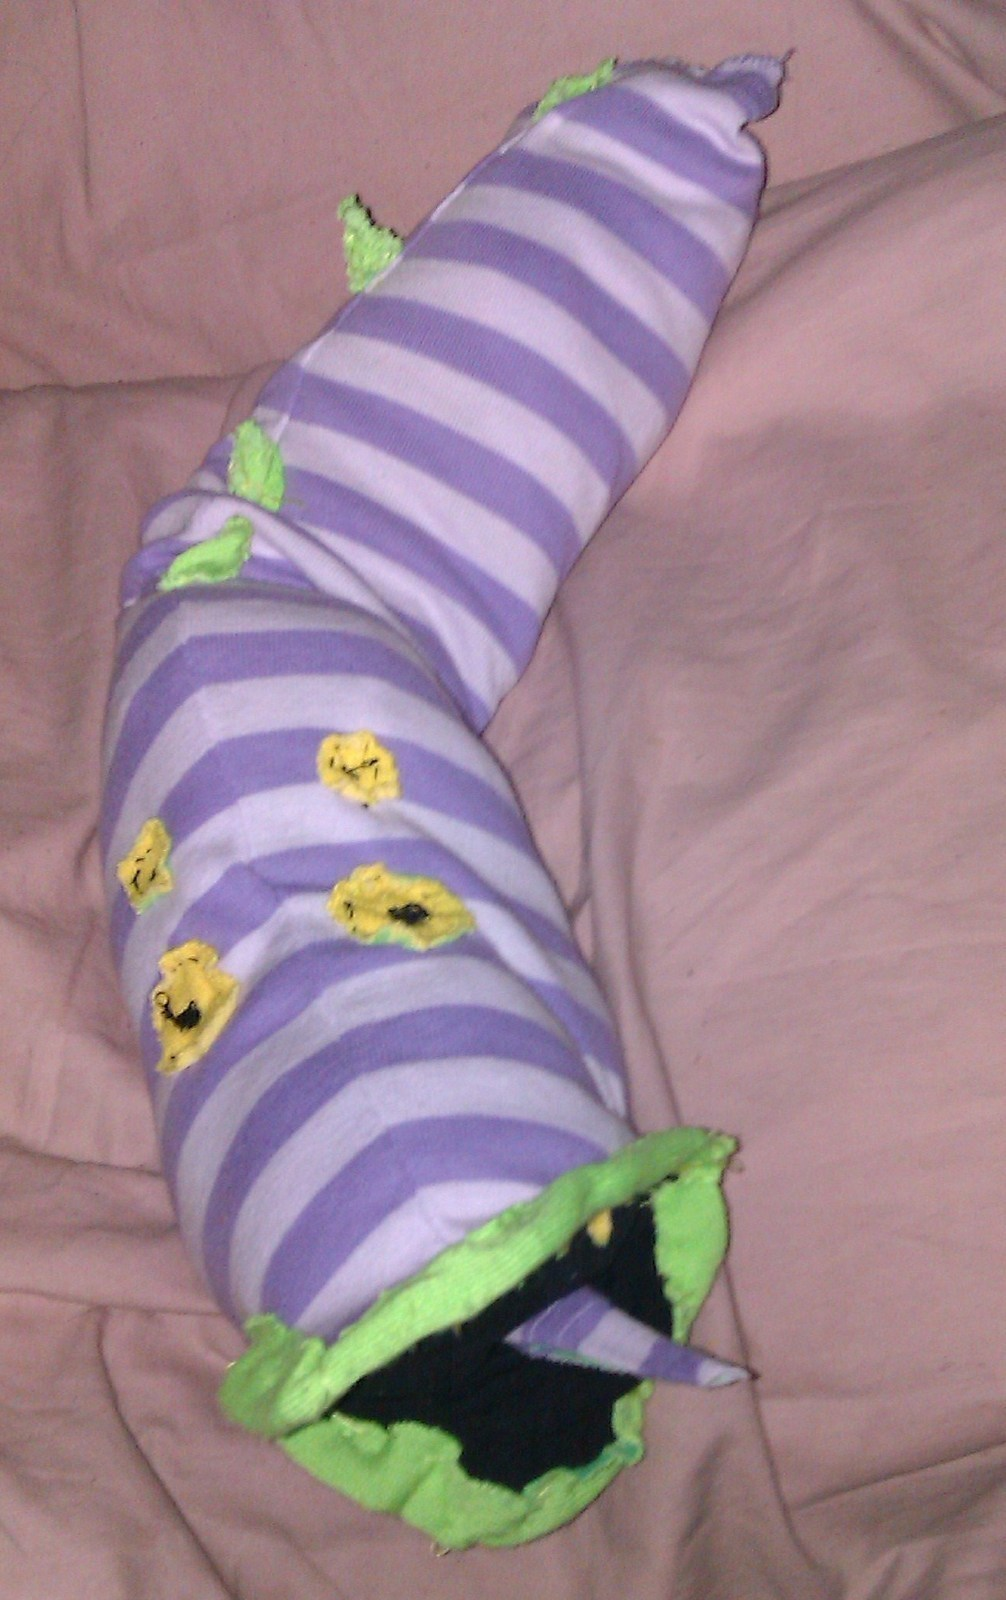 My Squishy Beetlejuice Sandworm From The Animated Series A Worm Plushie Sewing On Cut Out Keep